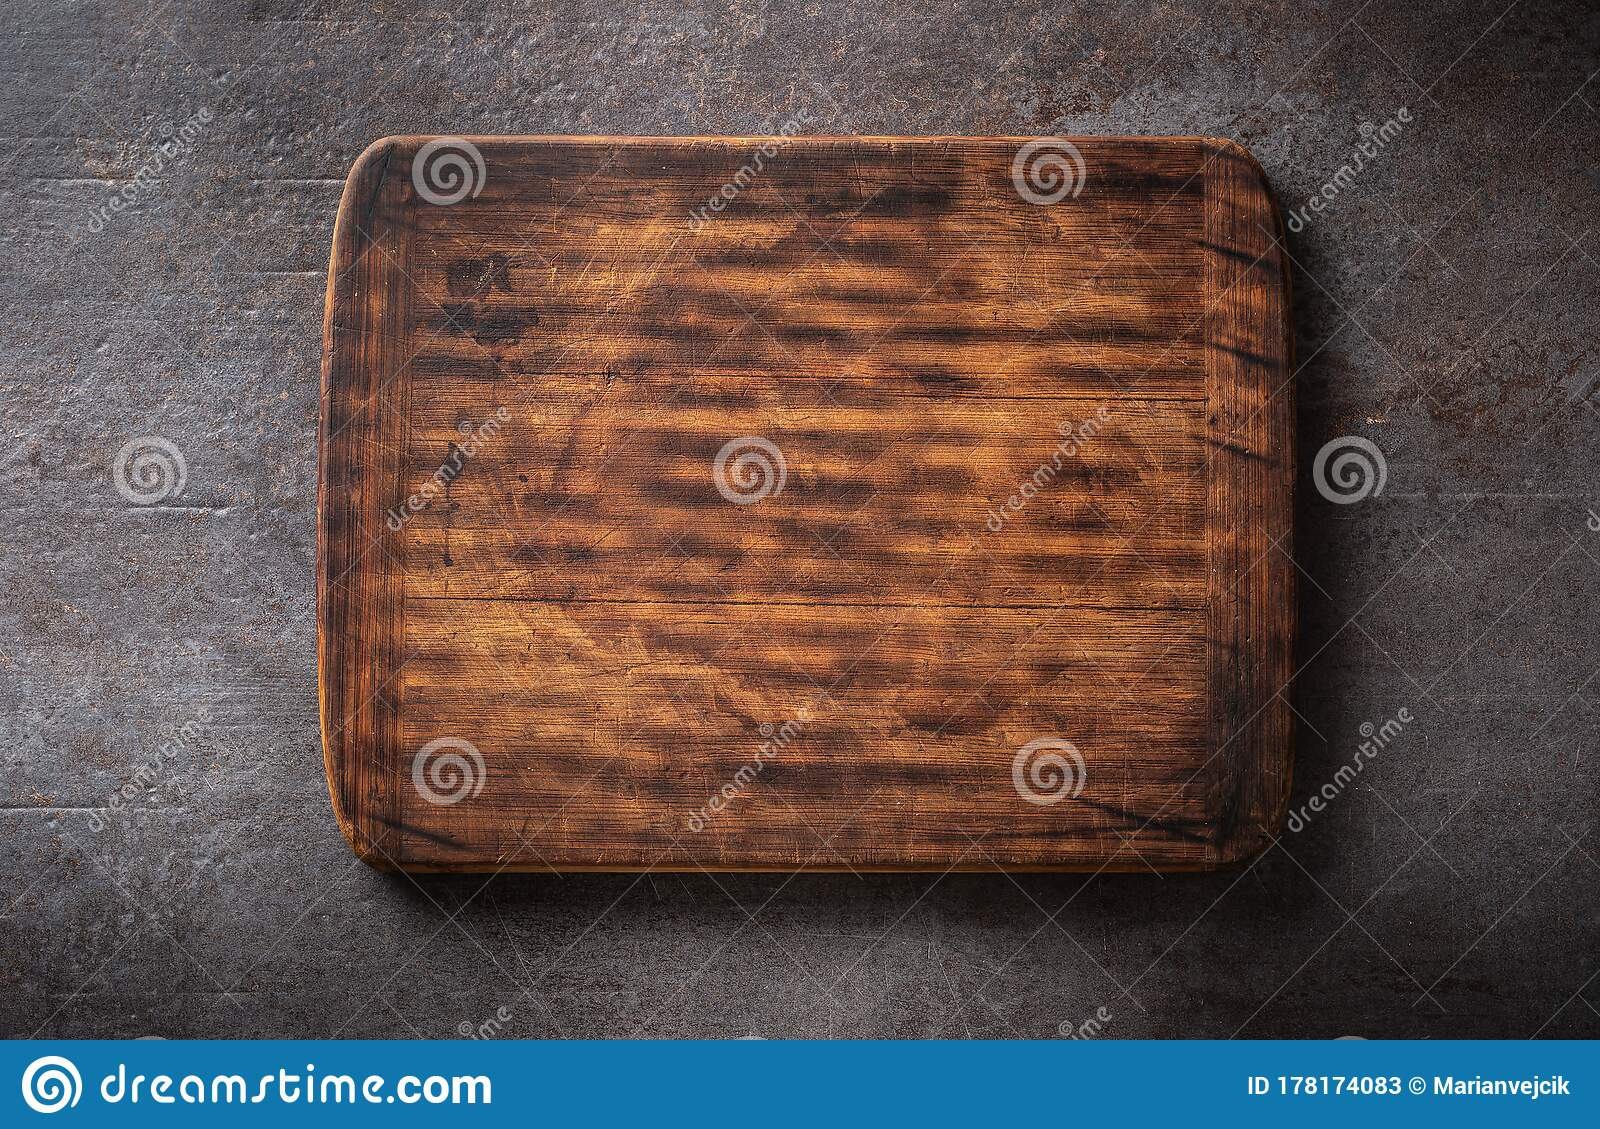 Top View Of Dark Brown Empty Rustic Wooden Rectangular Cutting Board With Rounded Edges On A Black Metallic Background Stock Image Image Of Equipment Desk 178174083